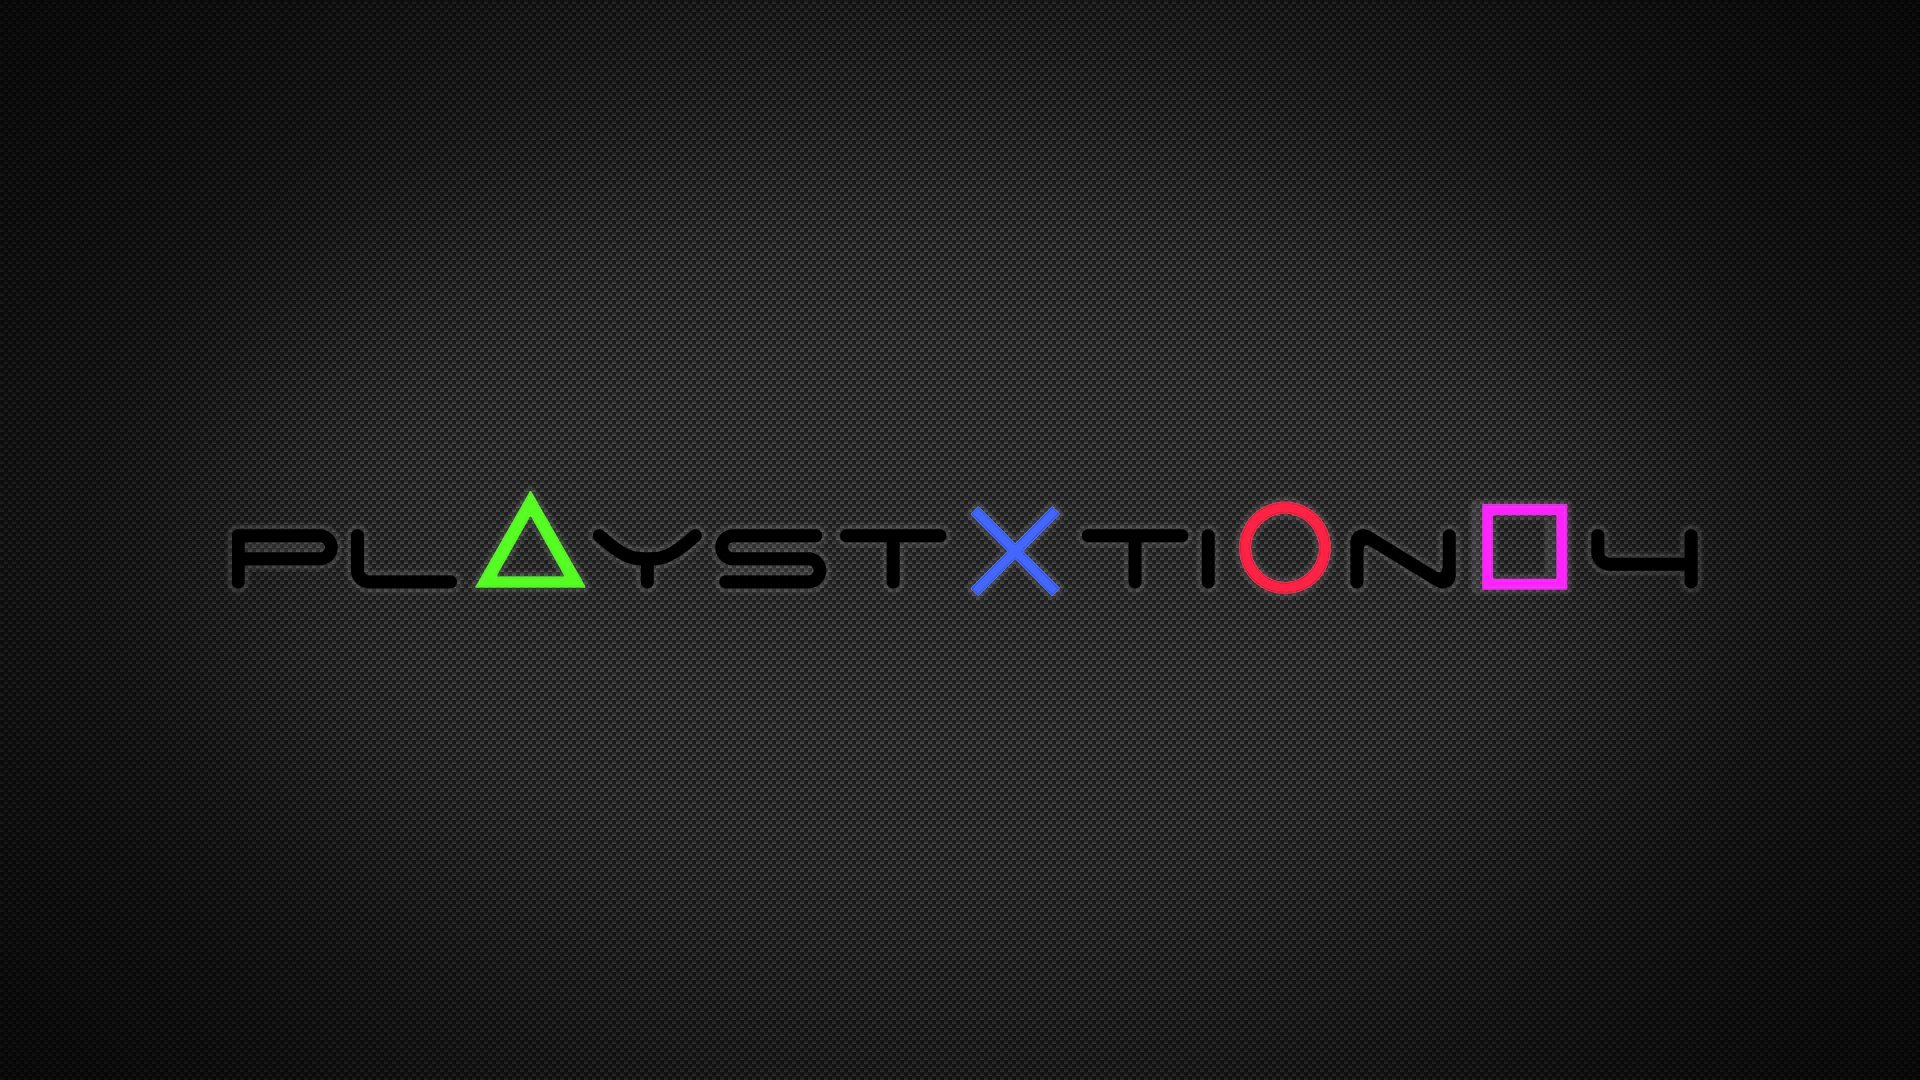 Sony PlayStation 4 Wallpapers Pictures Images 1920x1080